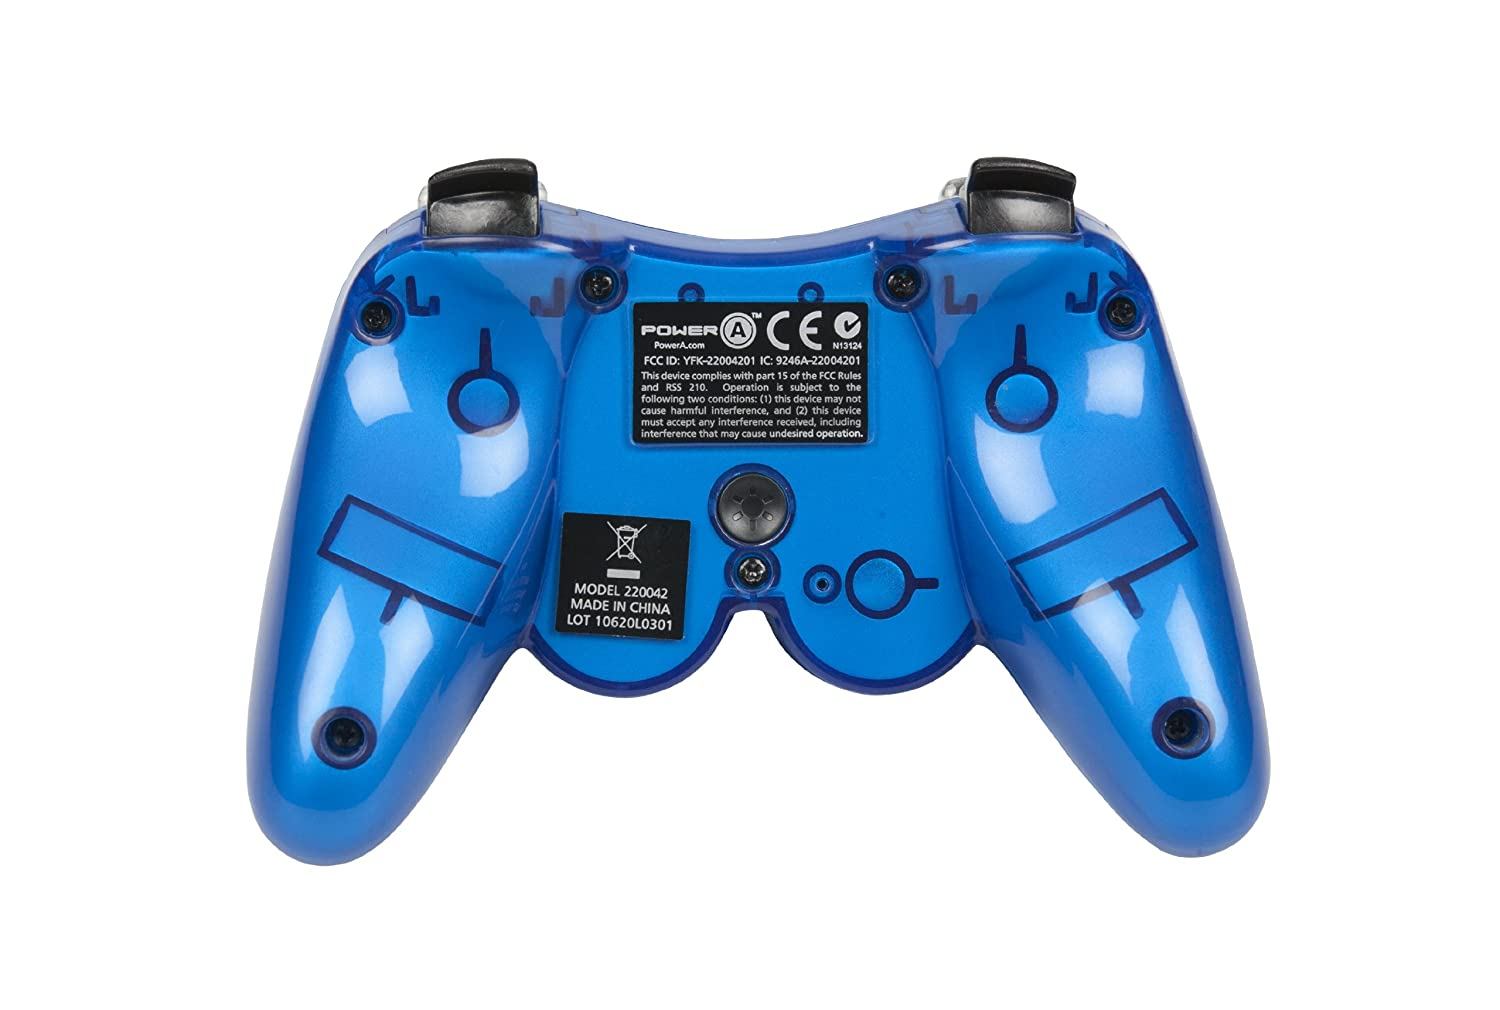 Powera mini pro elite wireless controller ps3 amazon pc powera mini pro elite wireless controller ps3 amazon pc video games publicscrutiny Image collections